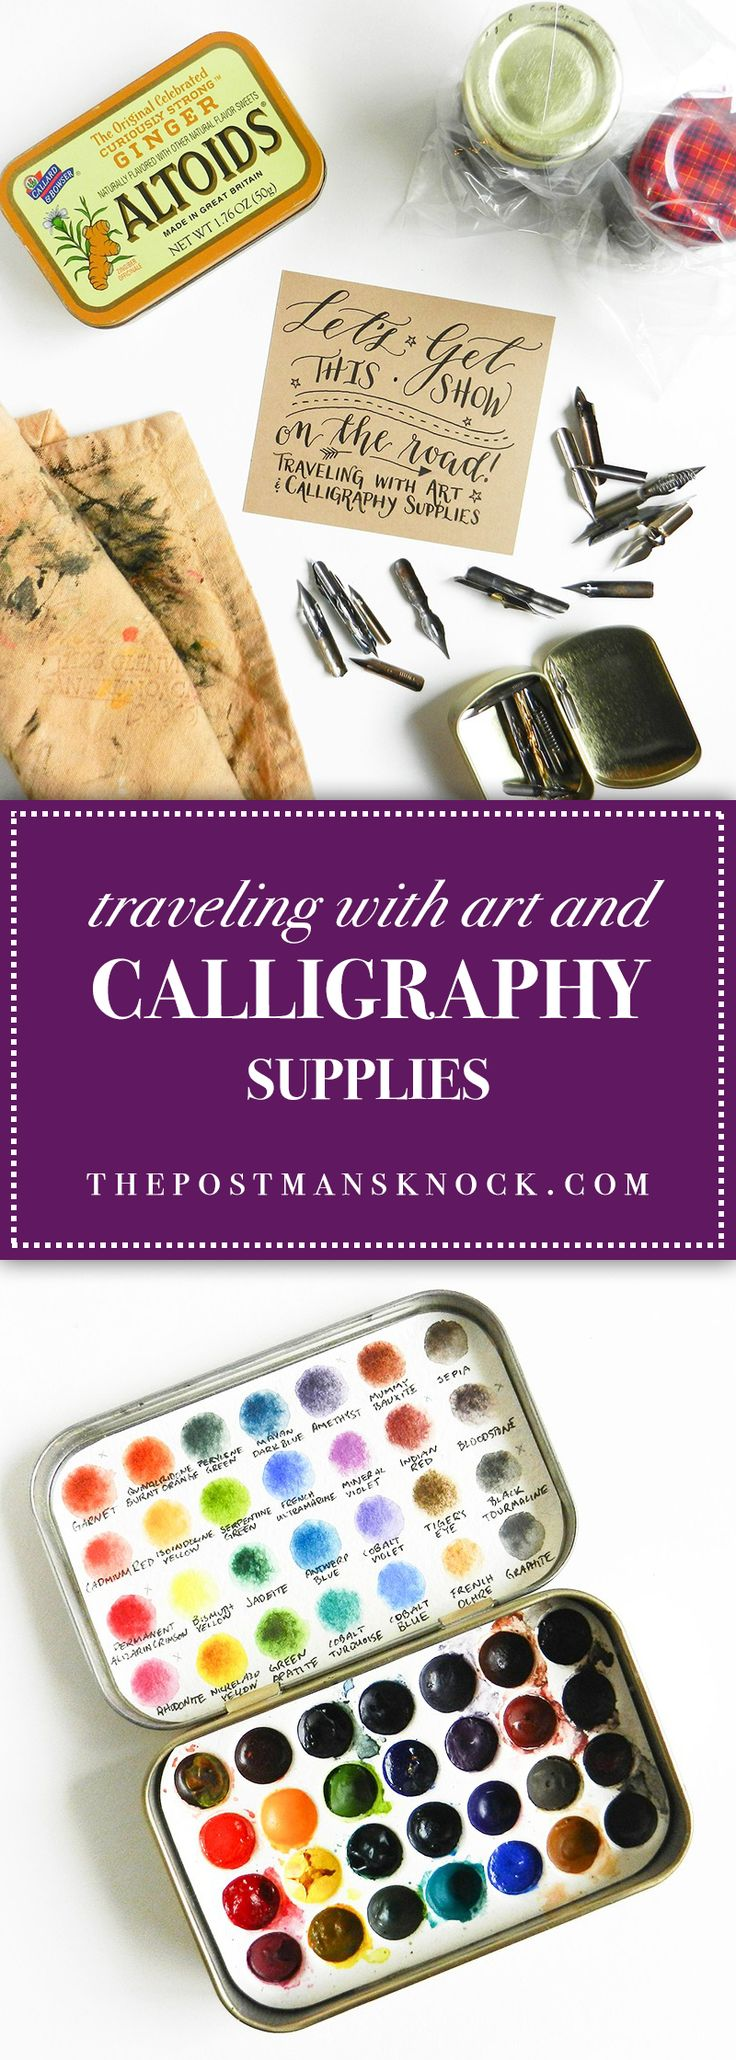 Traveling with Art and Calligraphy Supplies